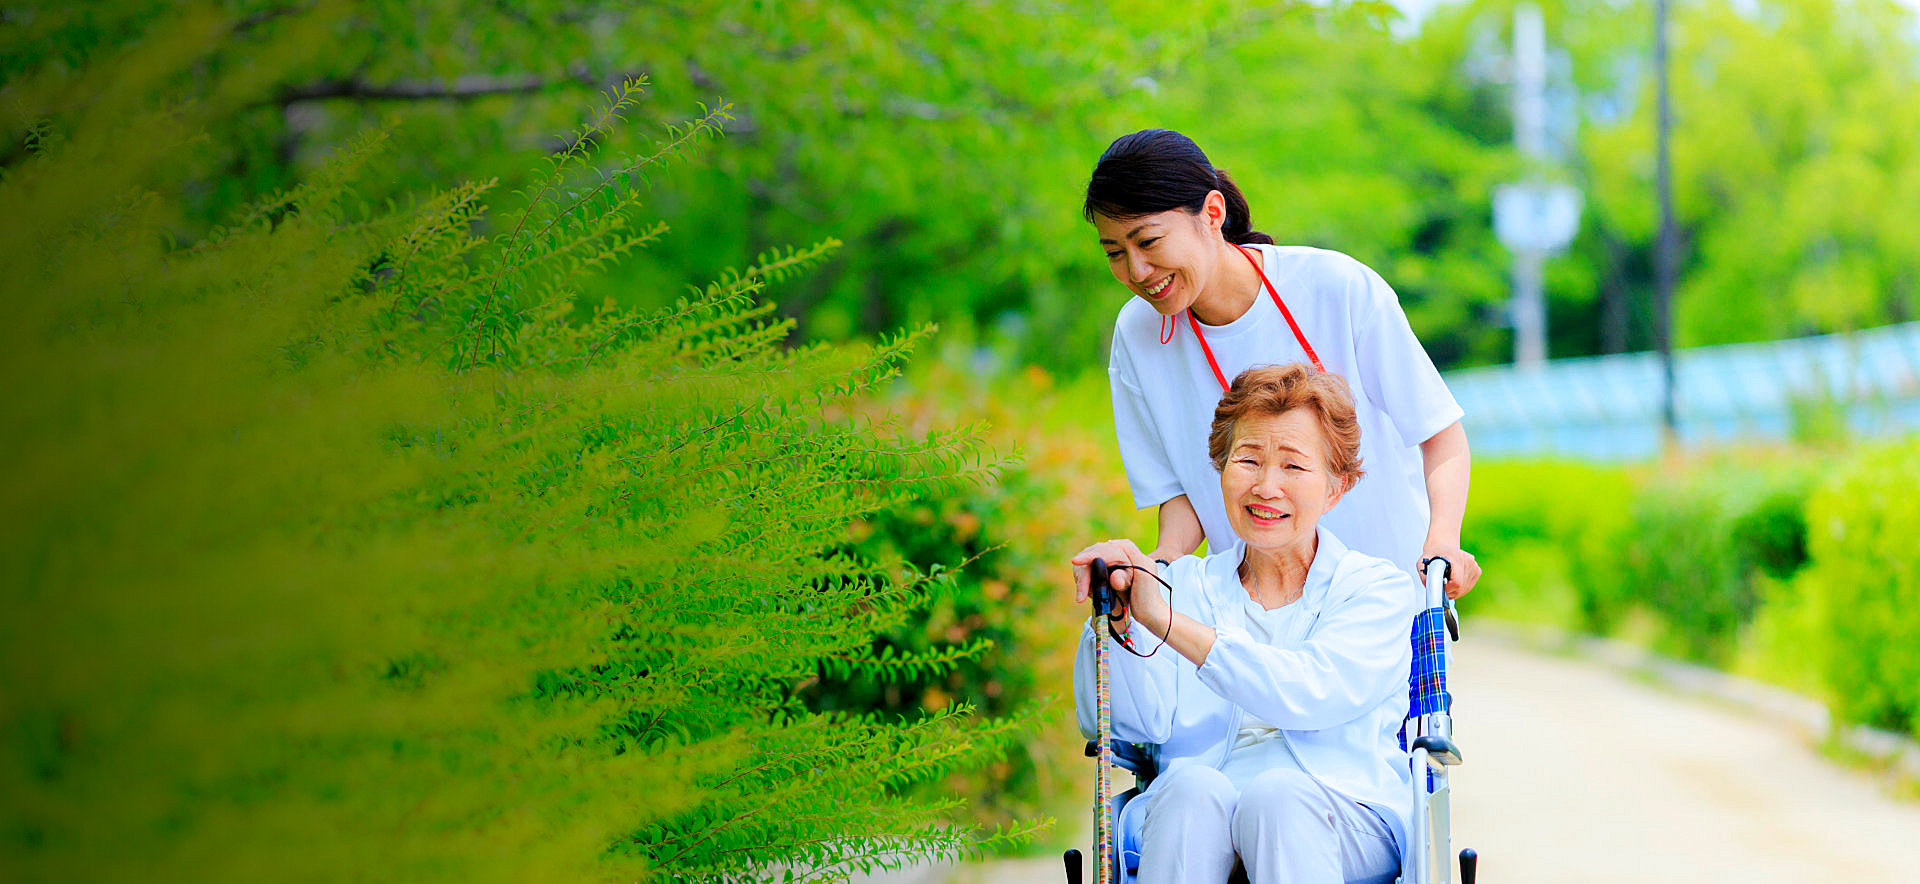 caregiver pushing senior woman's wheelchair on a garden